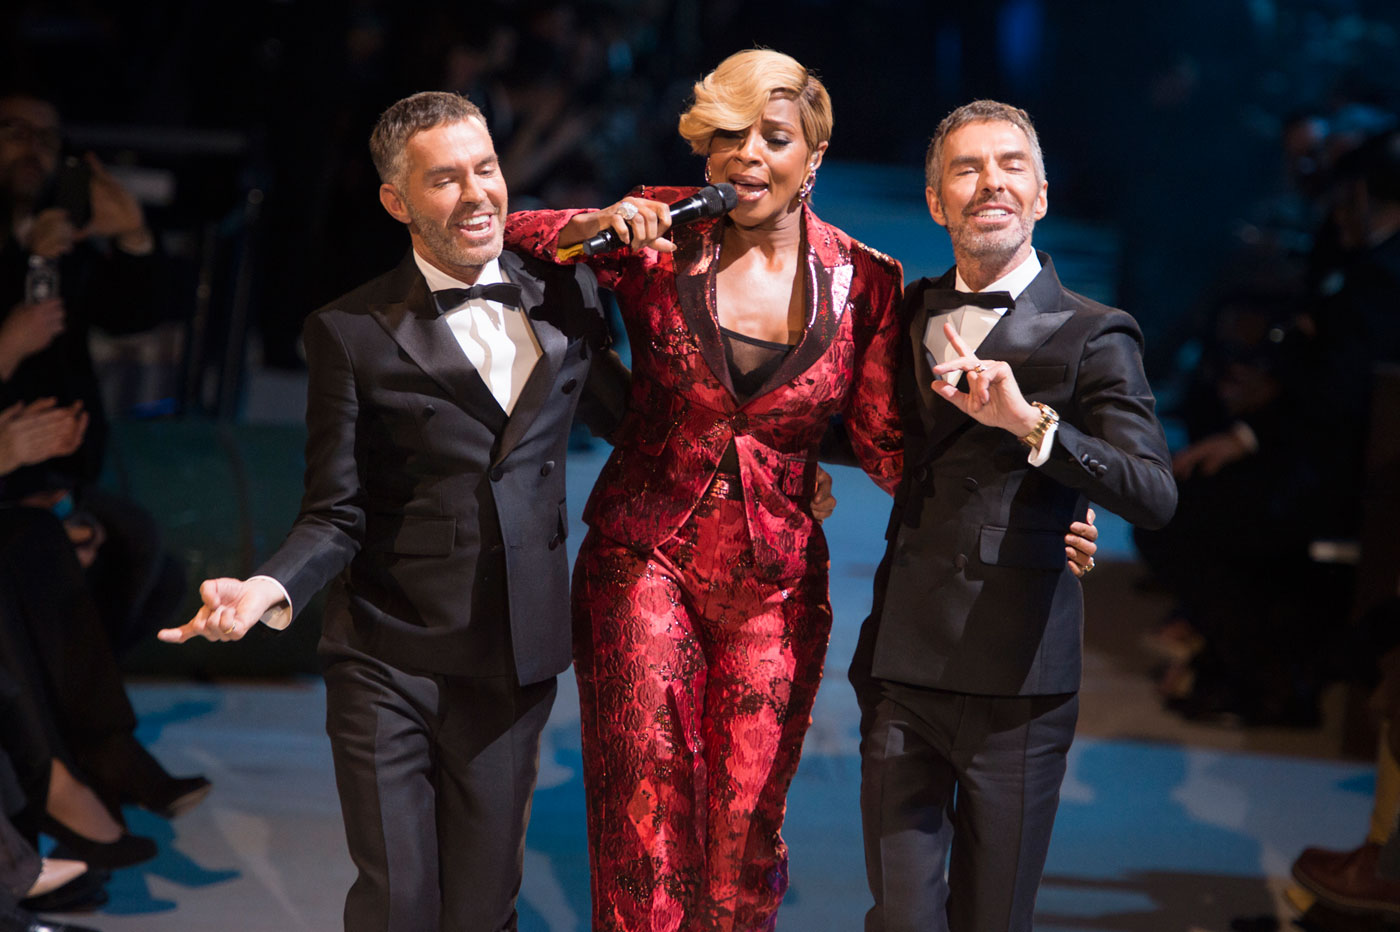 Dean and Dan Caten With Mary J. Blige at DSquared Mens Fall 2015; Image: IMaxTree